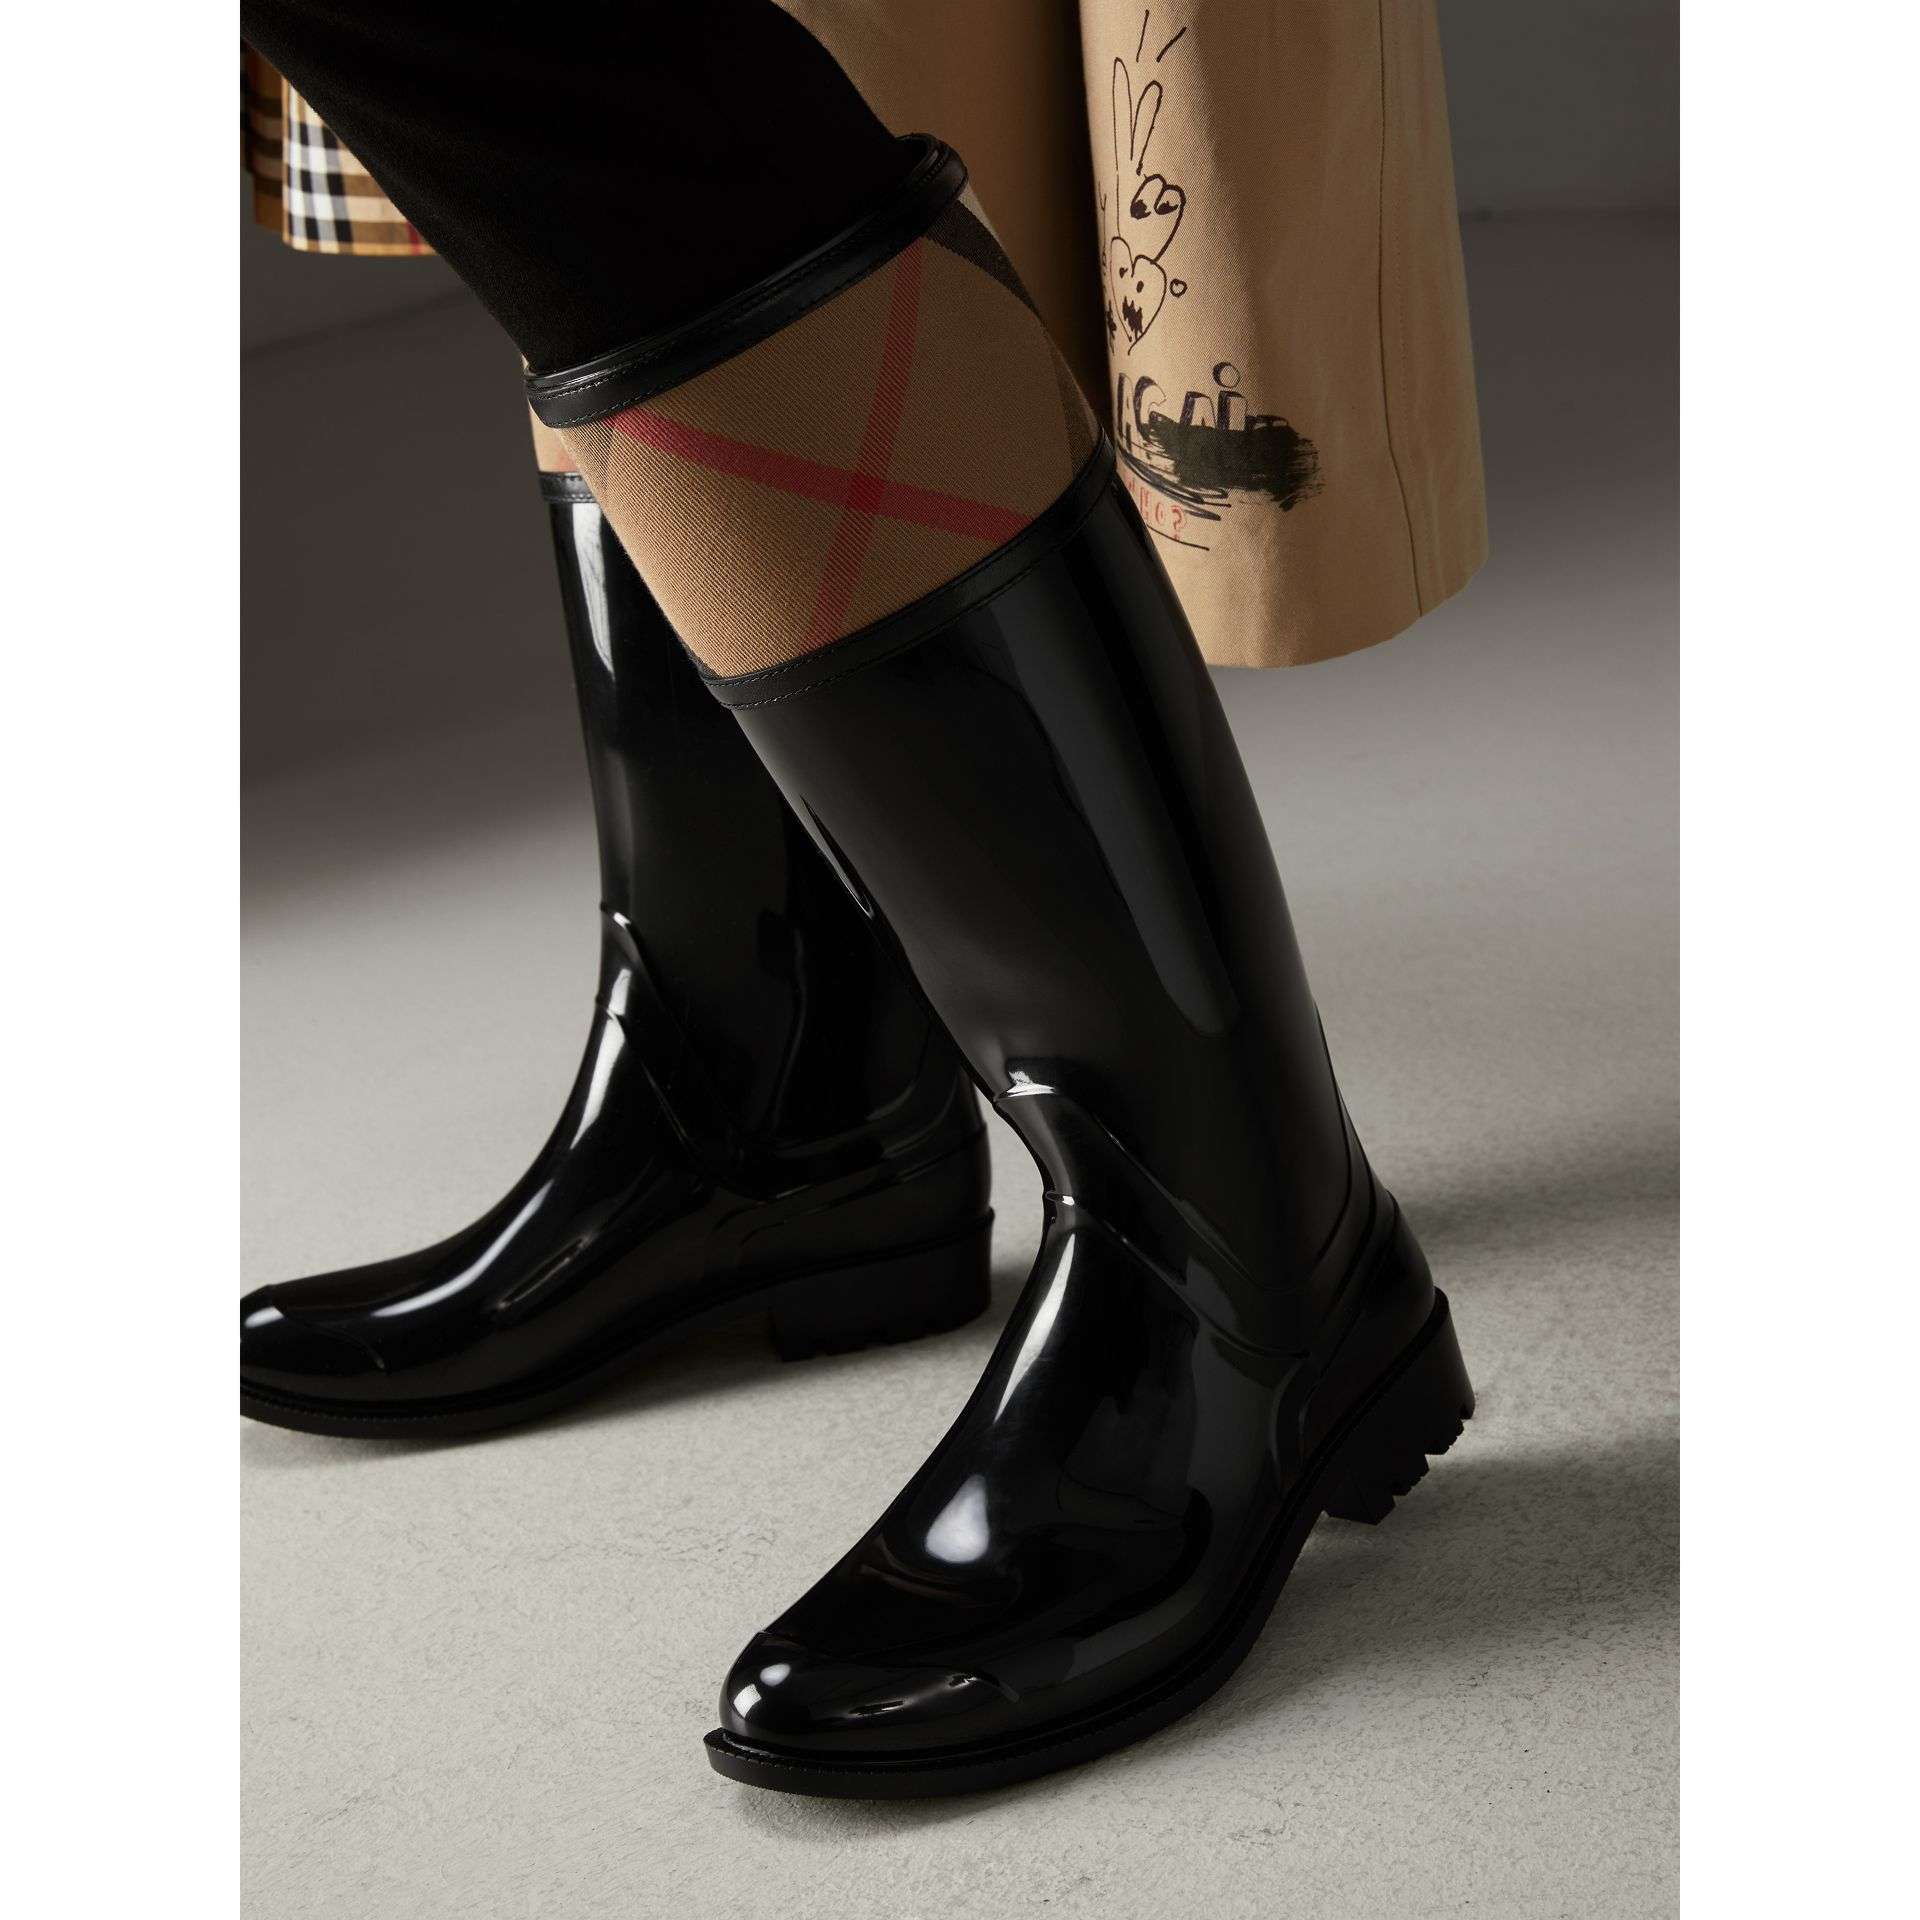 Regenstiefel in House Check (Schwarz) - Damen | Burberry - Galerie-Bild 2